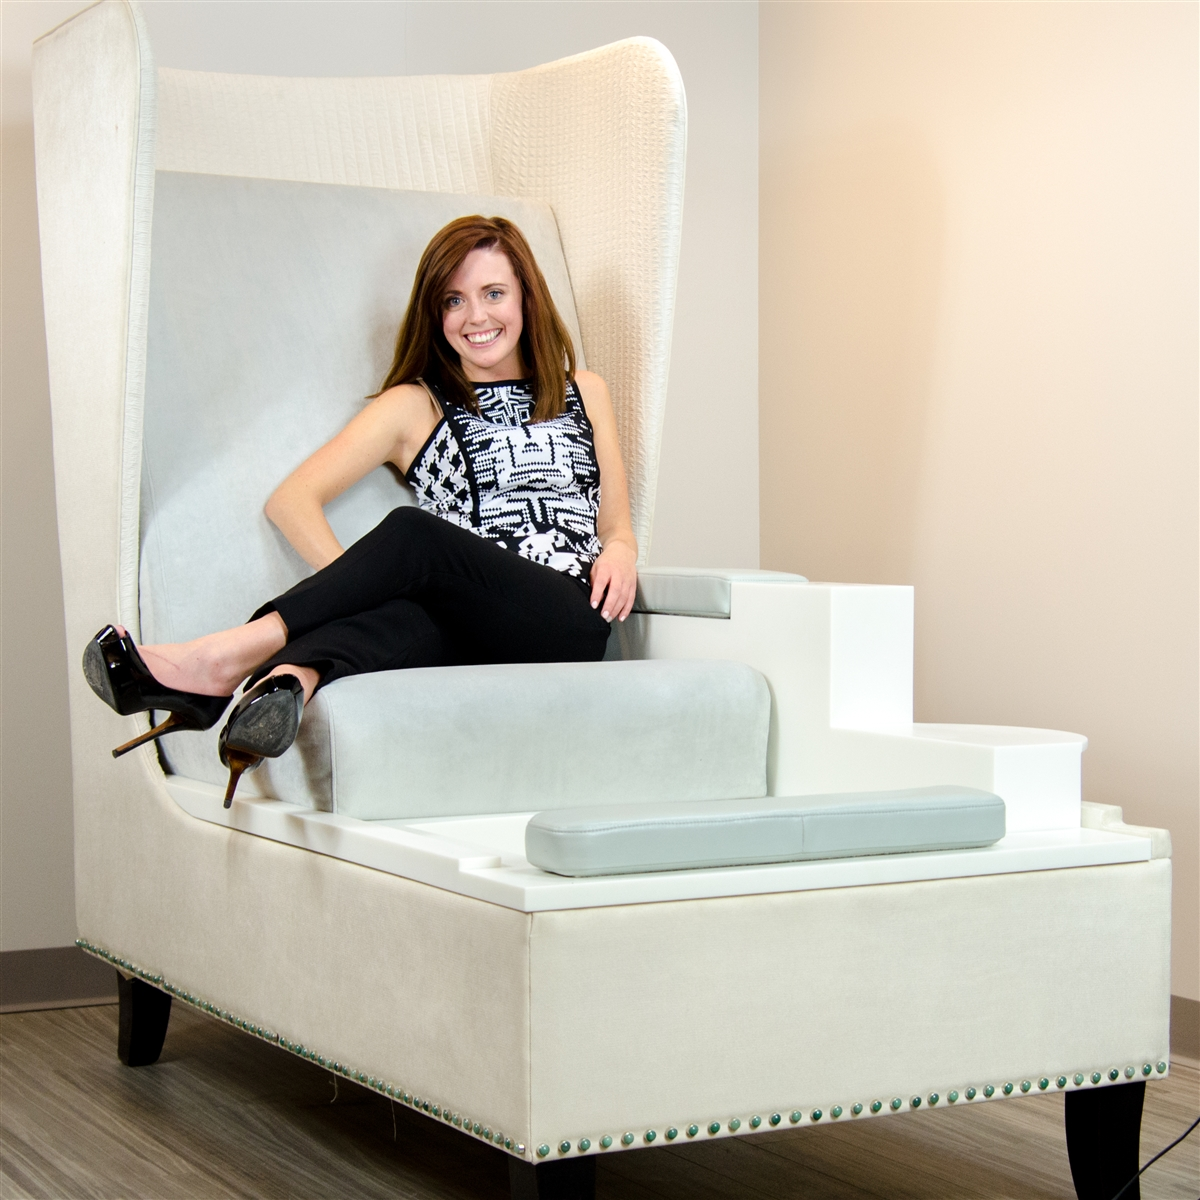 Pedicure Chair Blue Label Throne And Foot Spa Pedicure Chair For Nail Salon